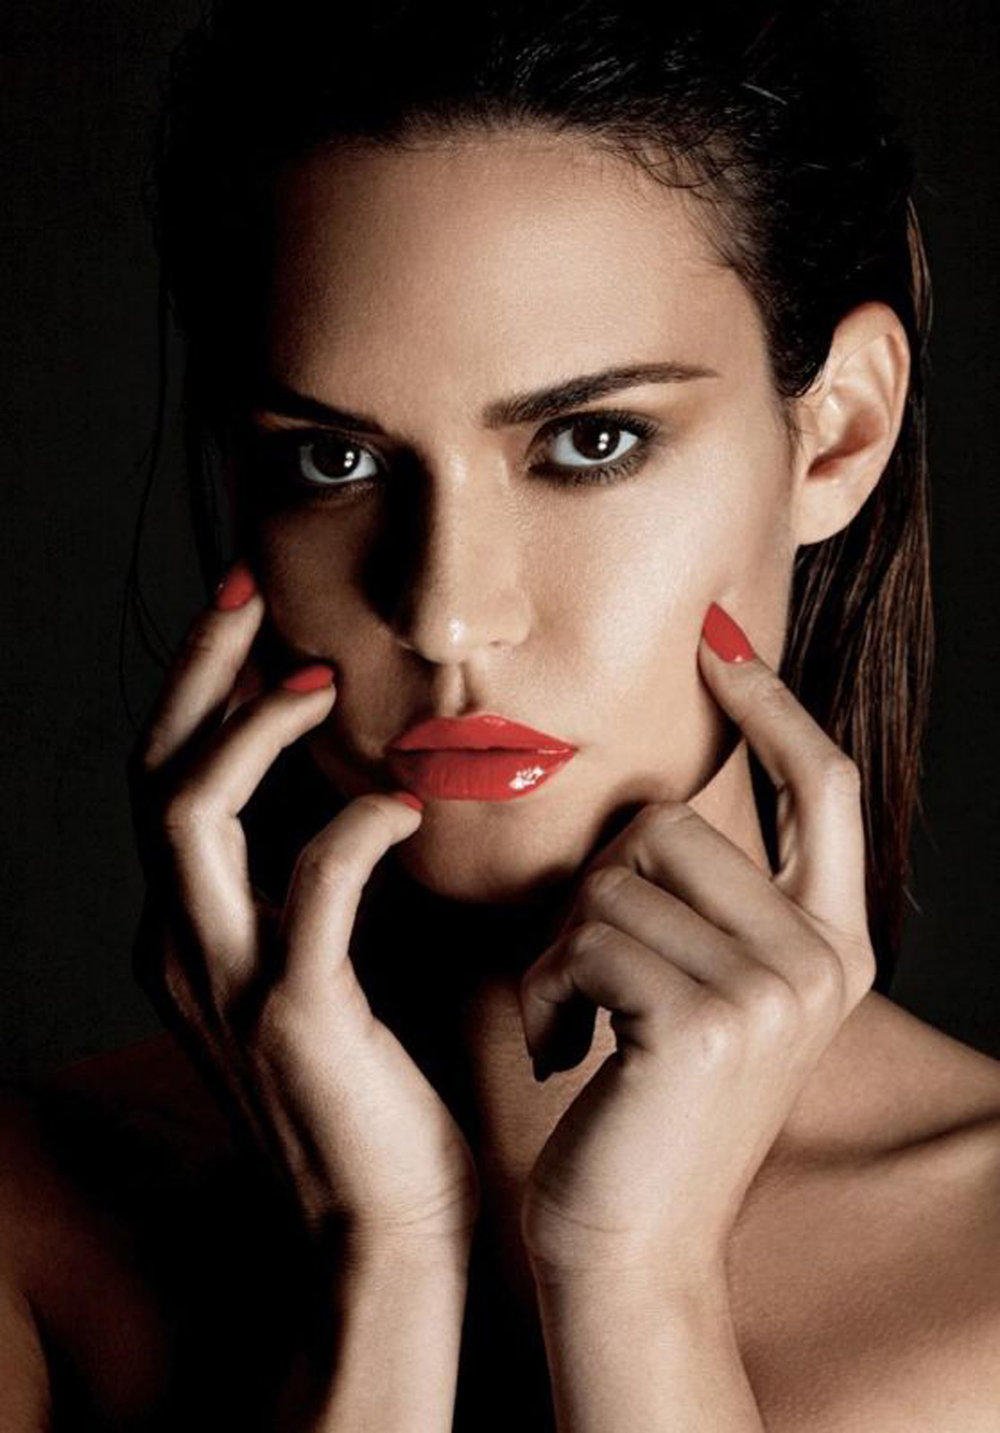 odette-annable-incover-magazine-july-2017-photos-1_thumbnail copy.jpg